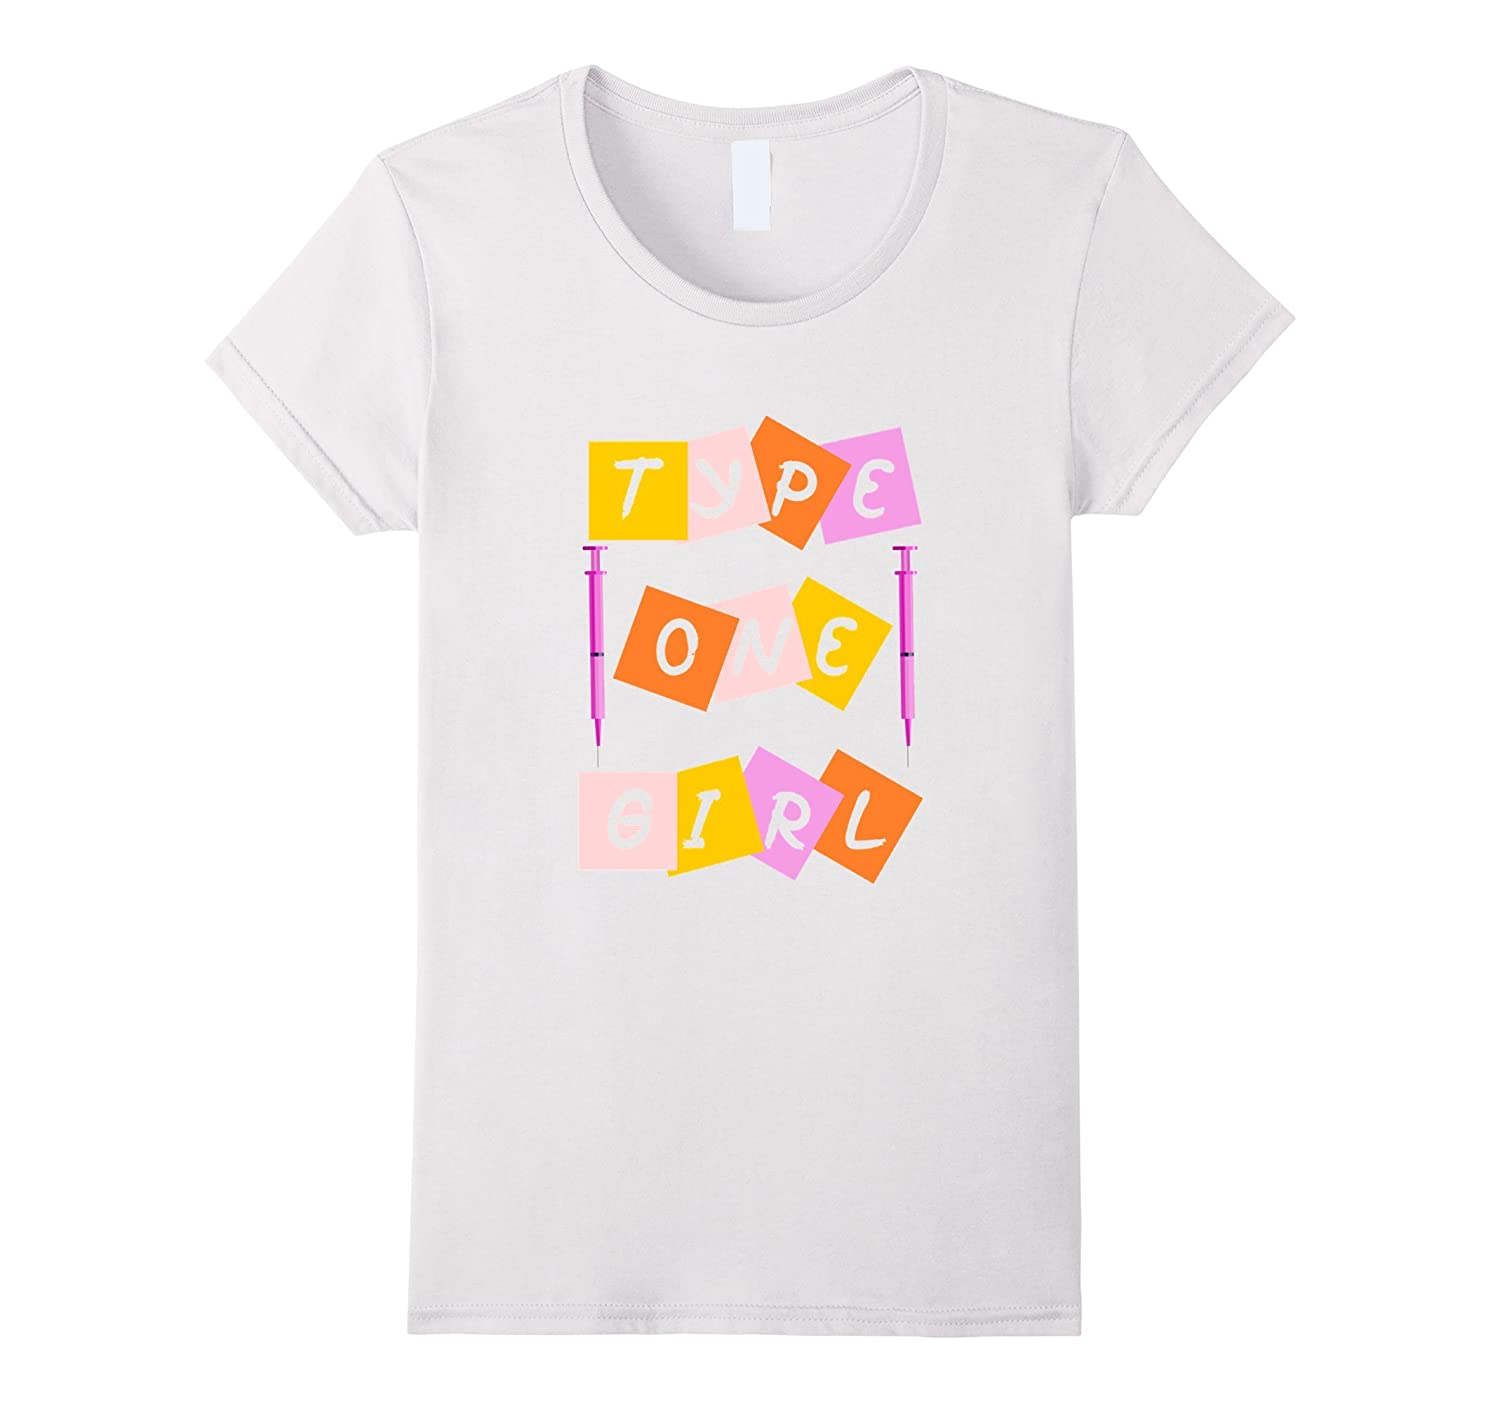 Type one diabetes girls t-shirt